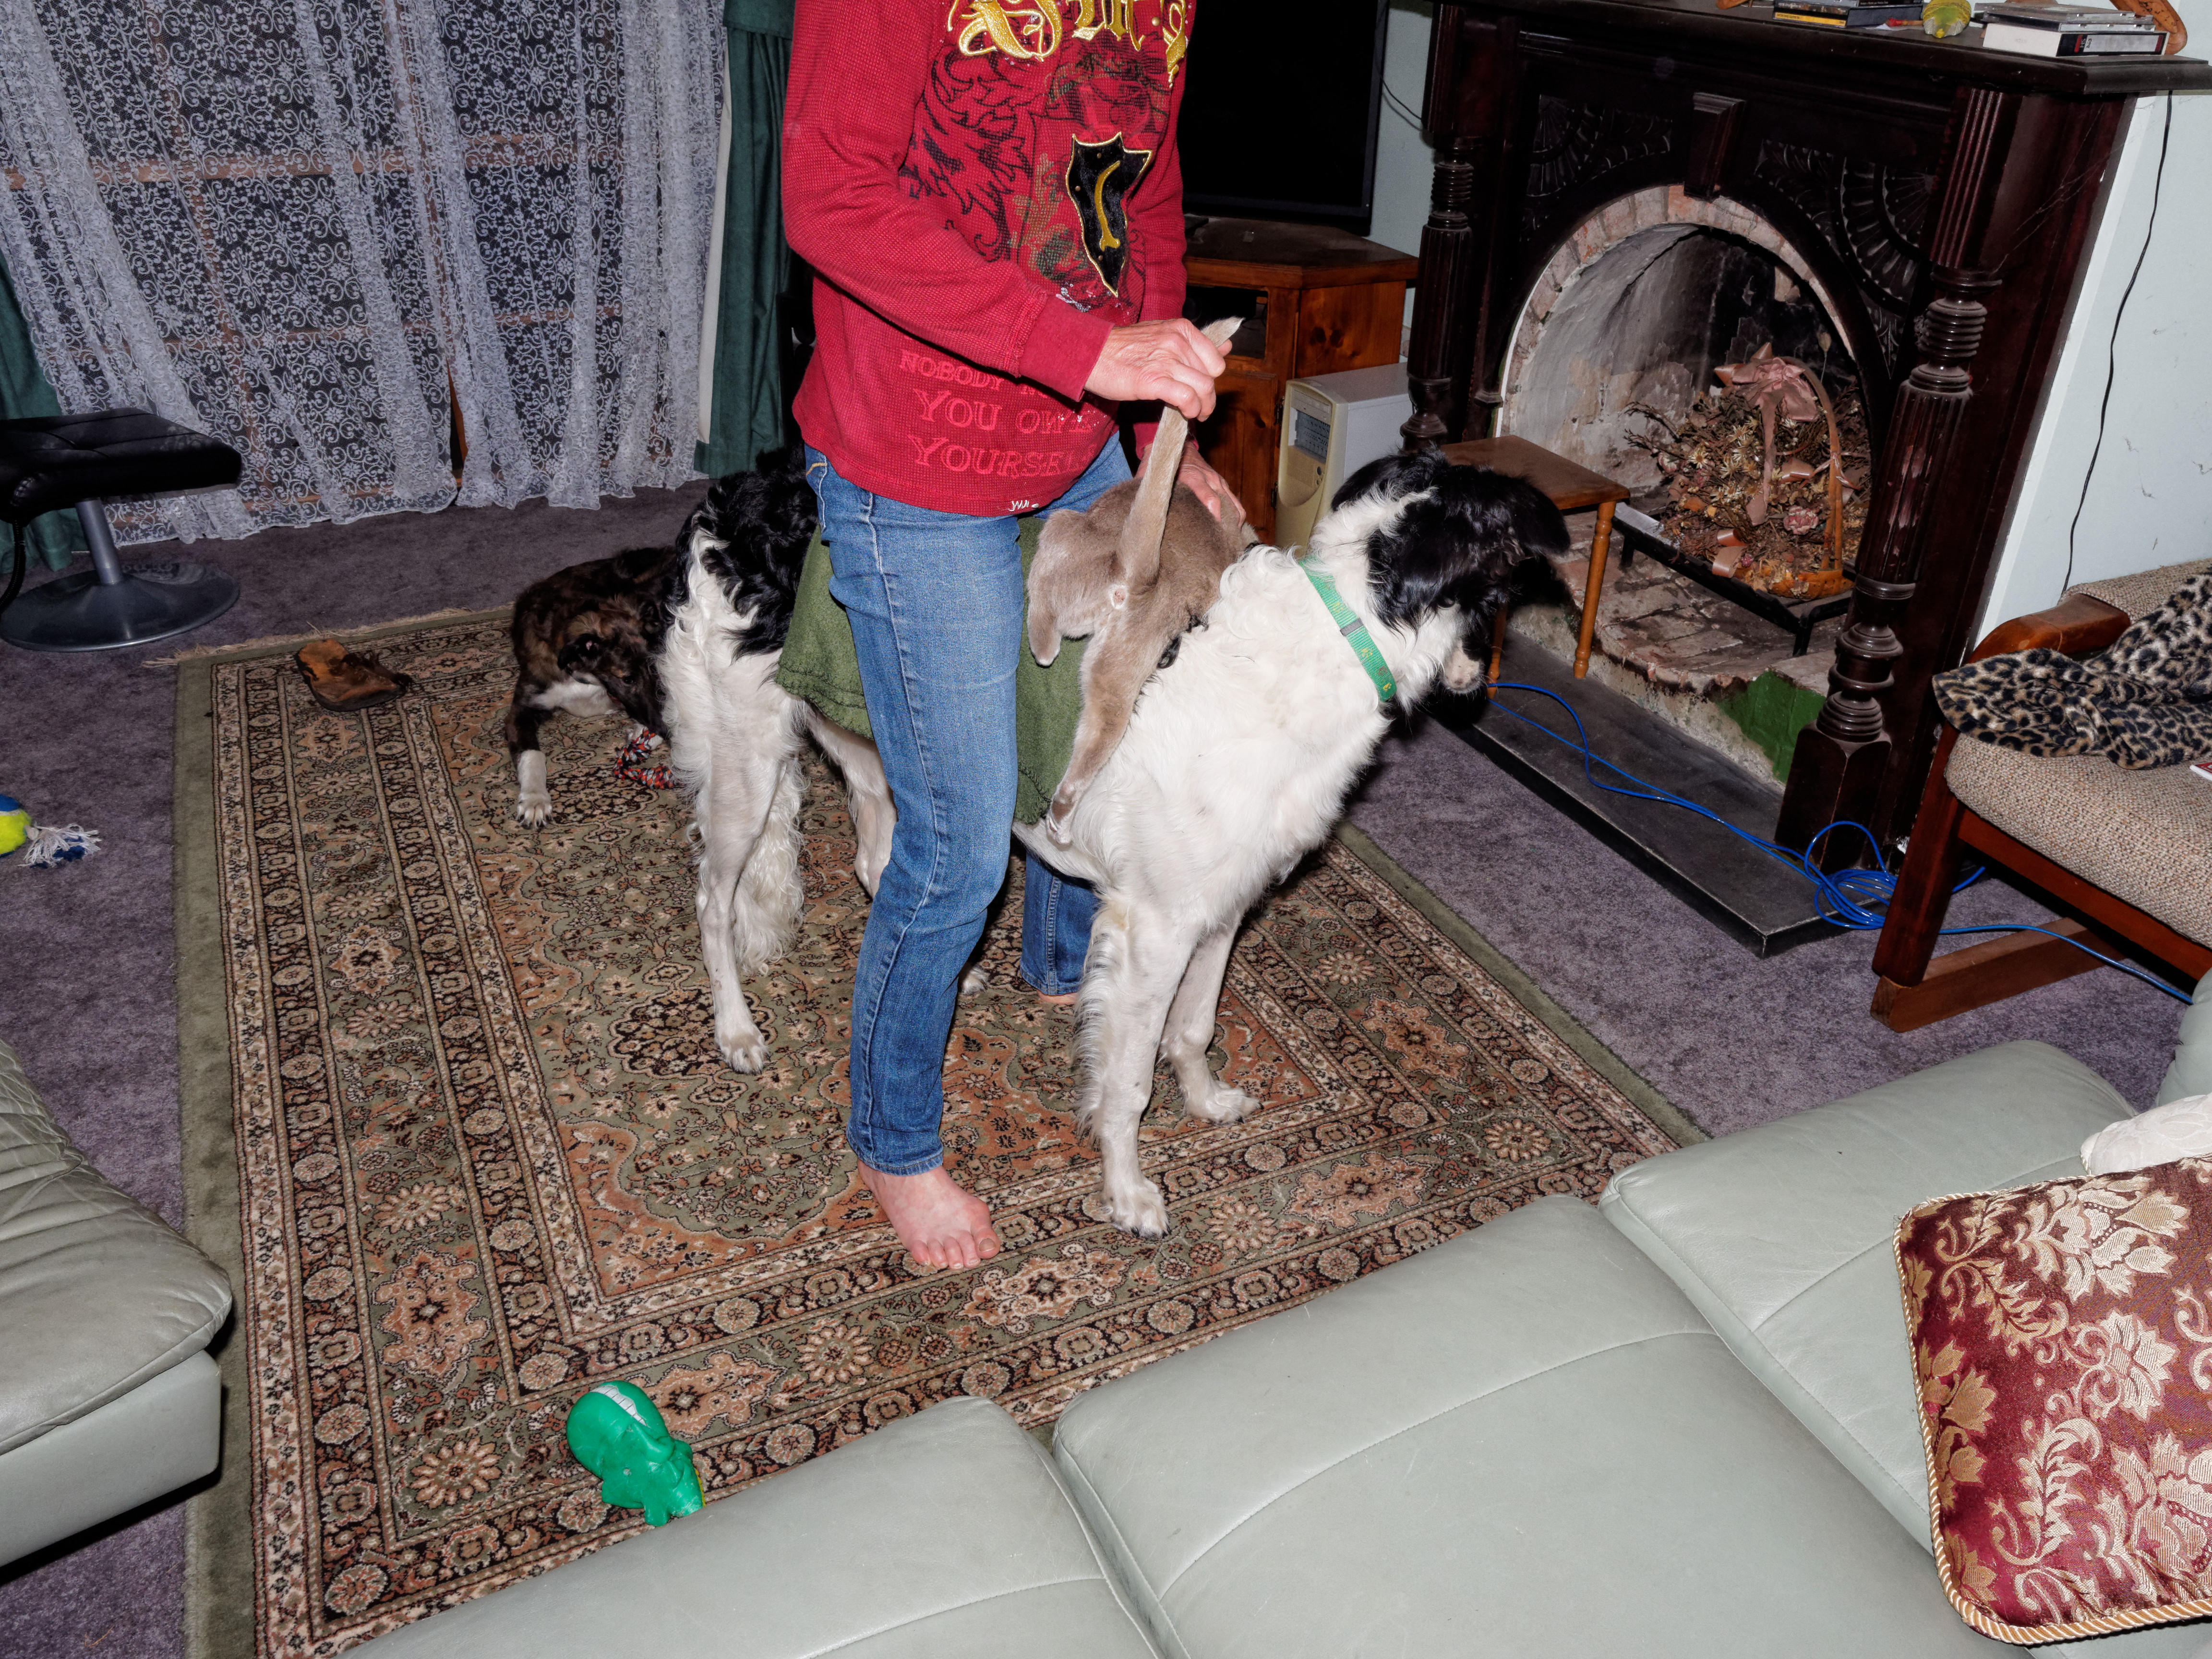 Chris-and-dogs-20-DxO.jpeg